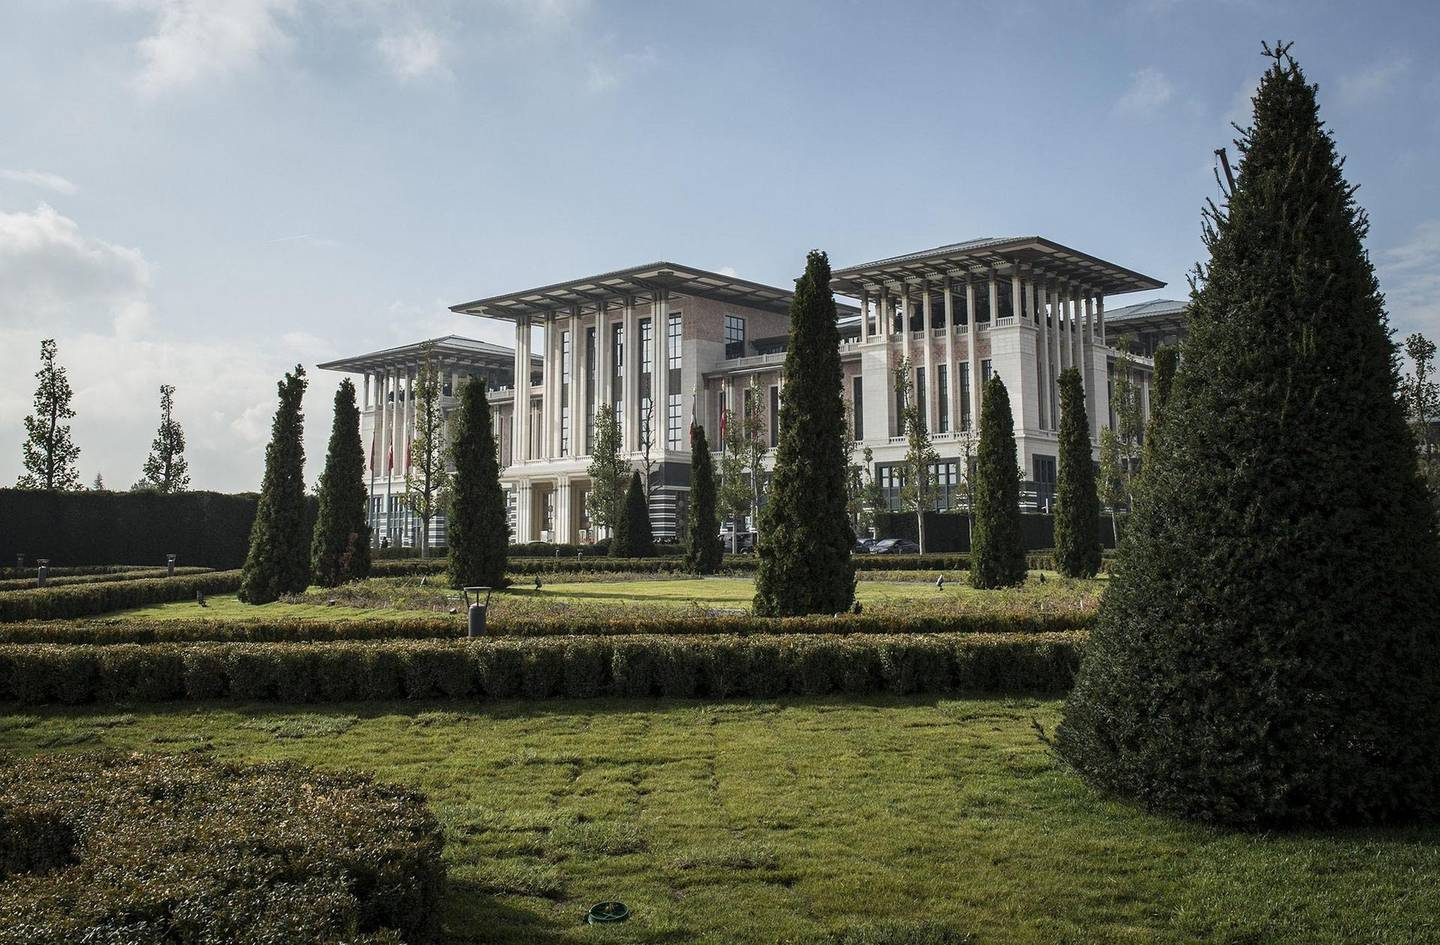 ANKARA, TURKEY - OCTOBER 28: A general view of Turkey's new Presidential Palace, built inside Ataturk Forest Farm and going to be used for Turkey's 91st Republic Day Reception which is going to be hosted by Turkish President Recep Tayyip Erdogan and First Lady Emine Erdogan on October 29, in Ankara, Turkey on October 28, 2014. (Photo by Ozge Elif Kizil/Anadolu Agency/Getty Images)